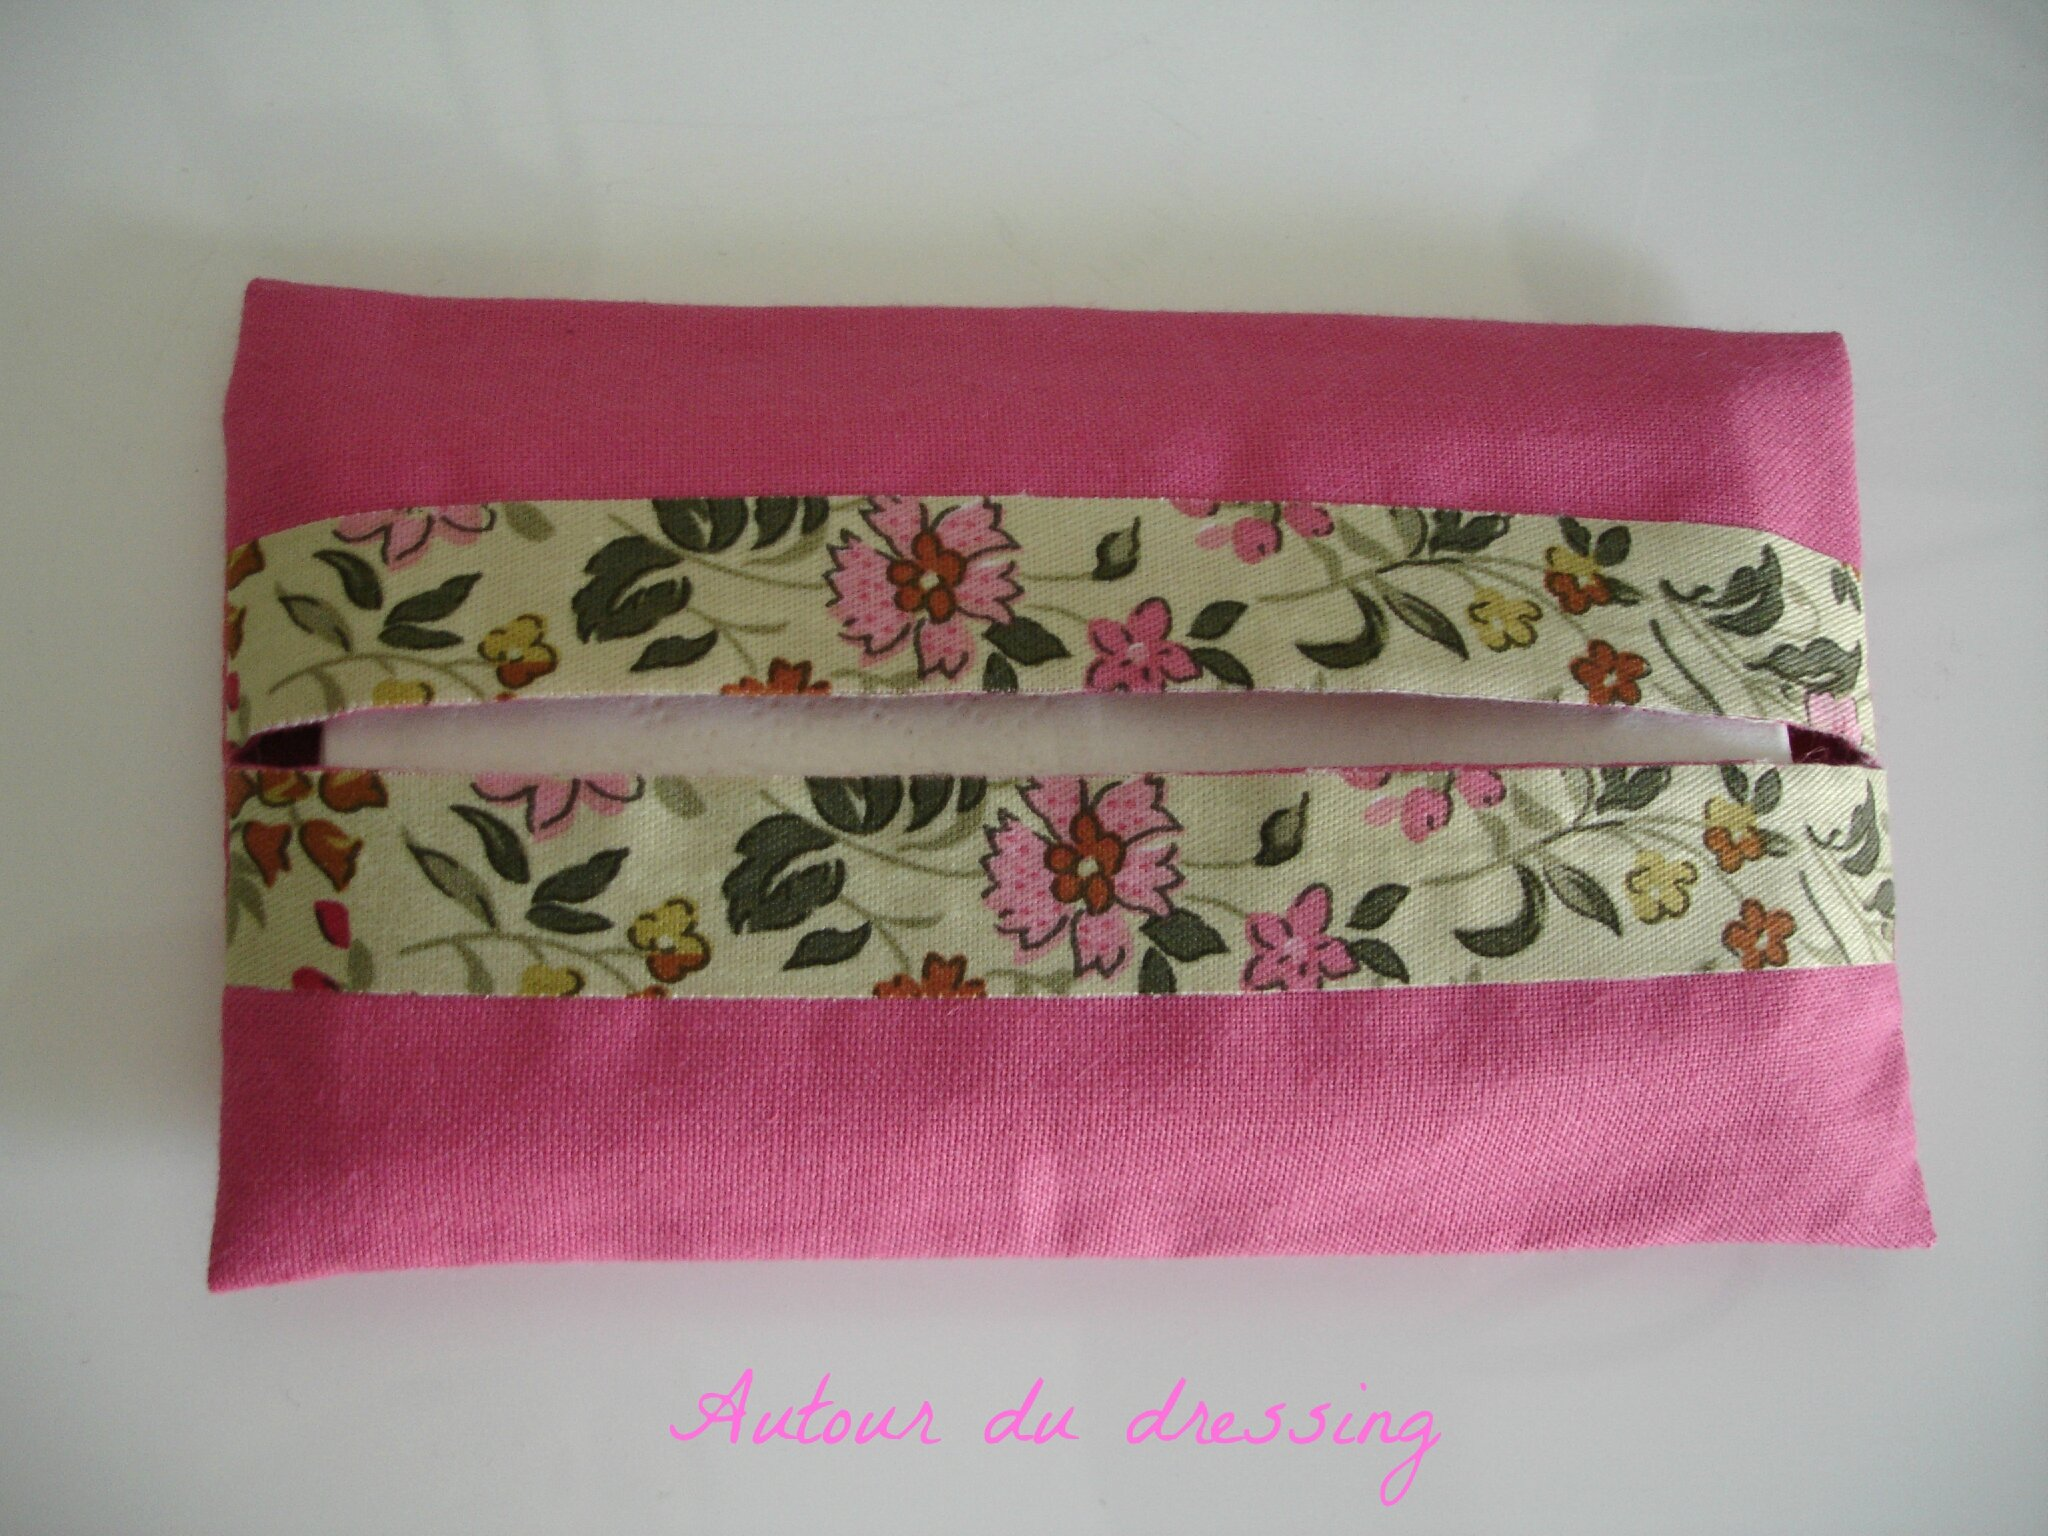 Couture facile pochette mouchoirsautour du dressing for Couture meaning in urdu